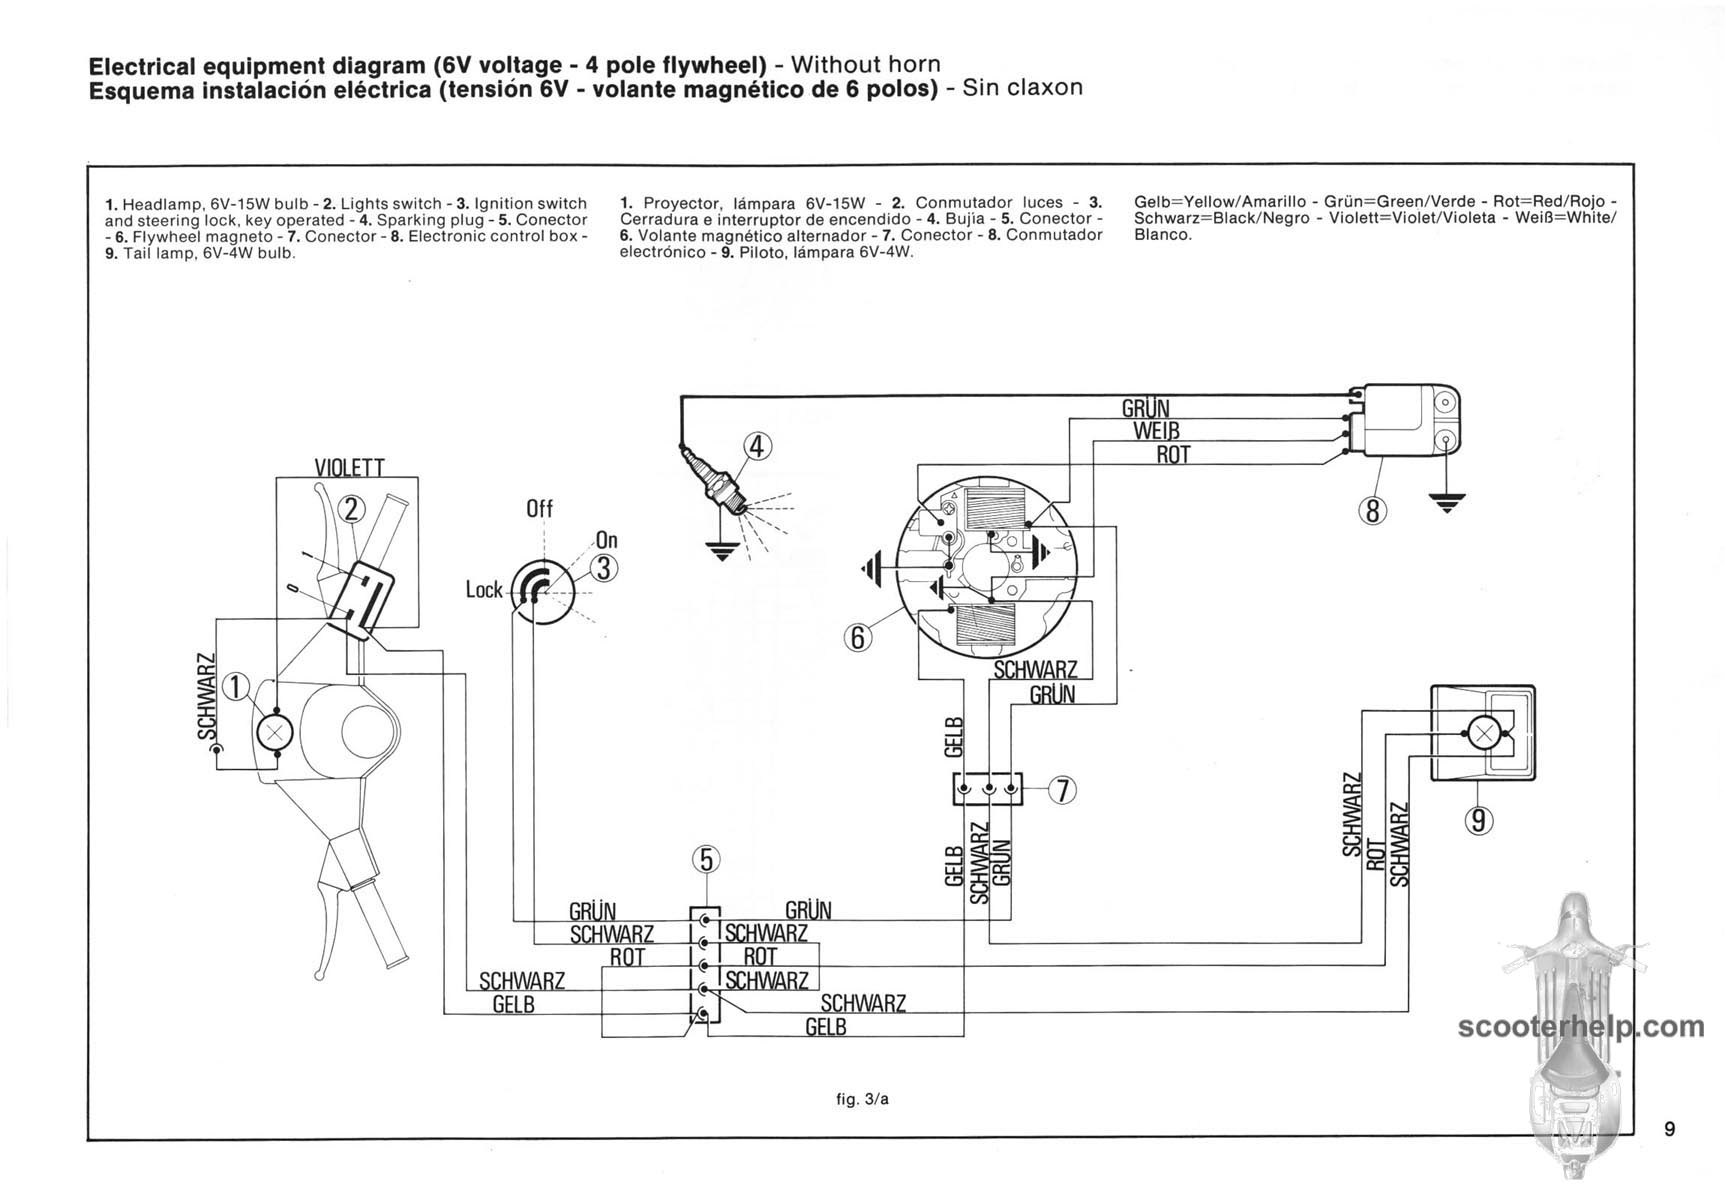 09 pk factory repair manual vespa p125x wiring diagram at fashall.co